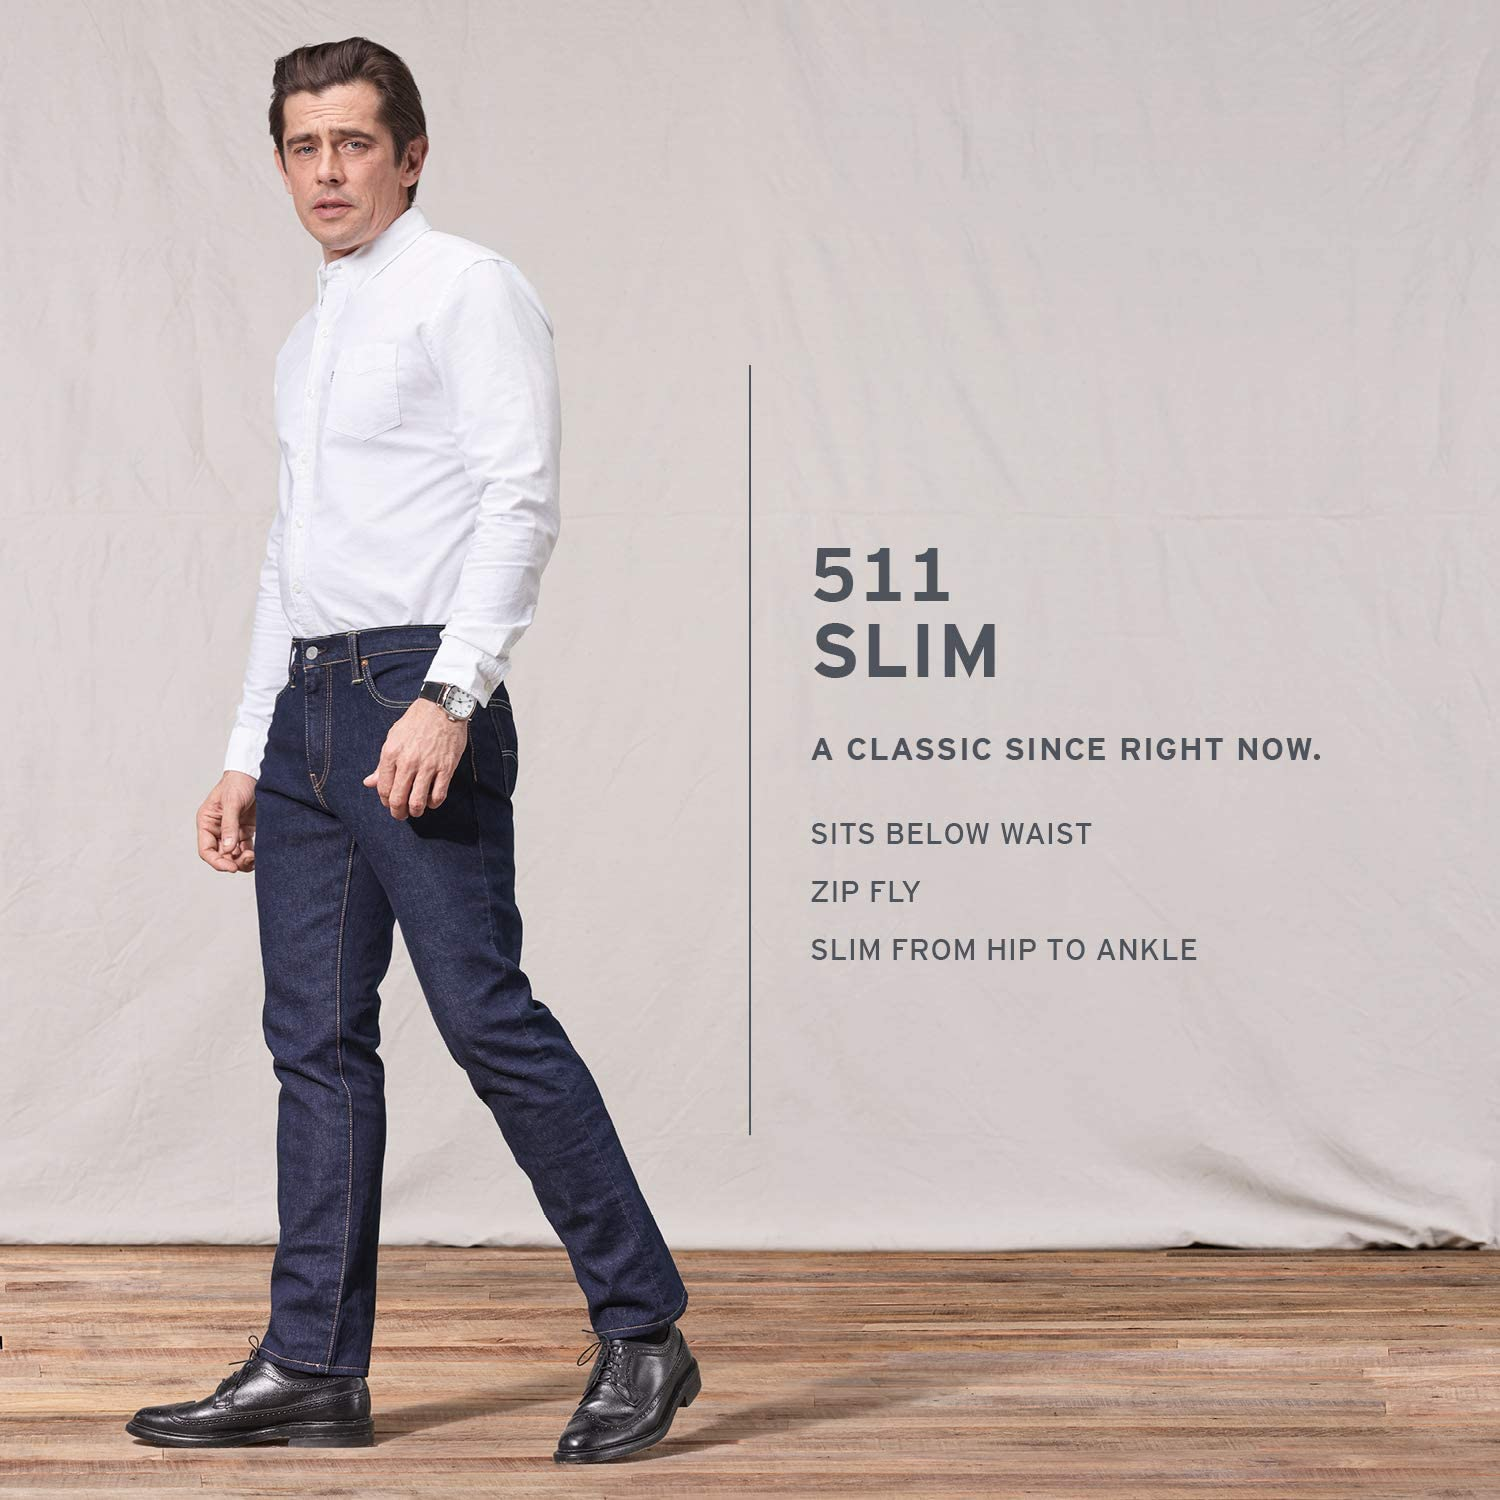 Levis - Jean - Homme - 511 Slim Fit 0751 Light Poly Stonewashed - Bleu Patiné Pumped Up - Stretch